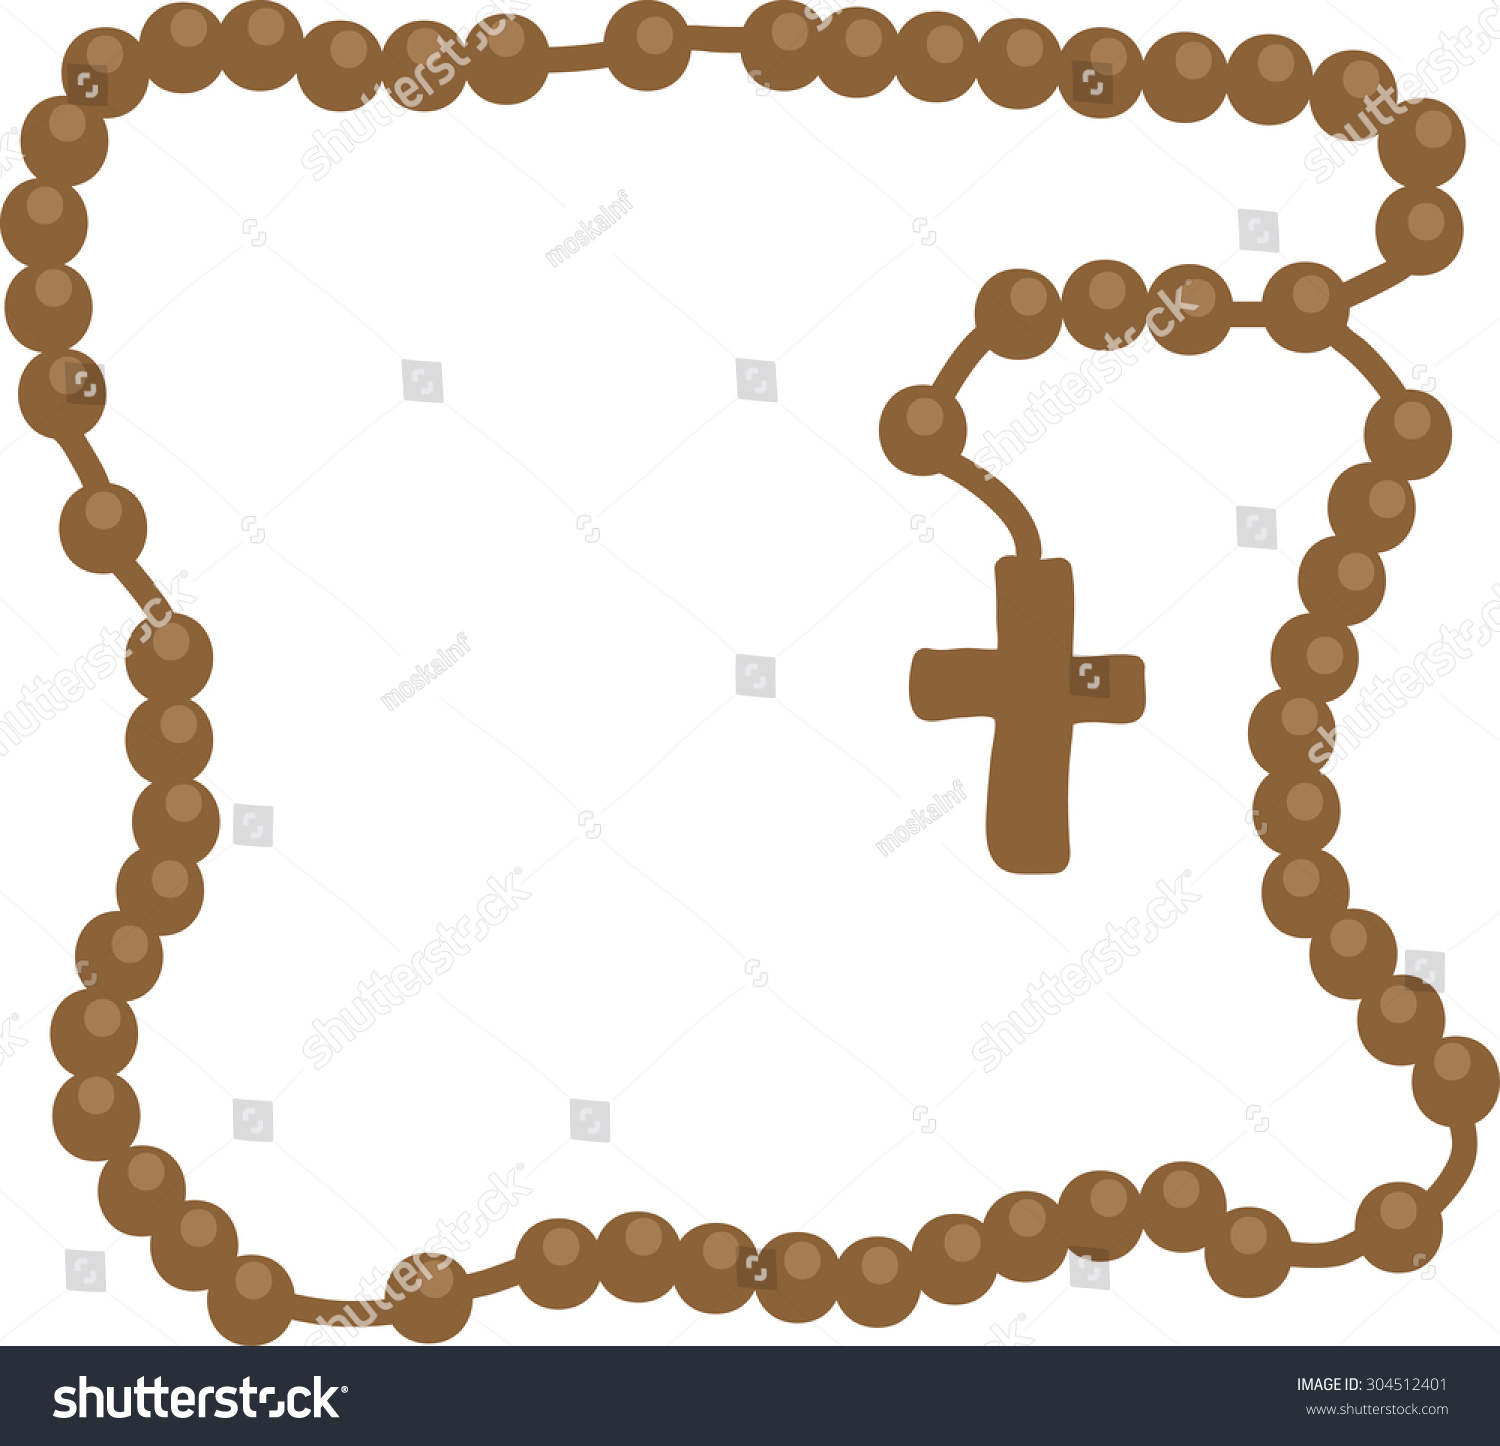 Royalty free holy rosary brown frame with rosary 304512401 holy rosary brown frame with rosary brown wooden catholic rosary beads religious symbols biocorpaavc